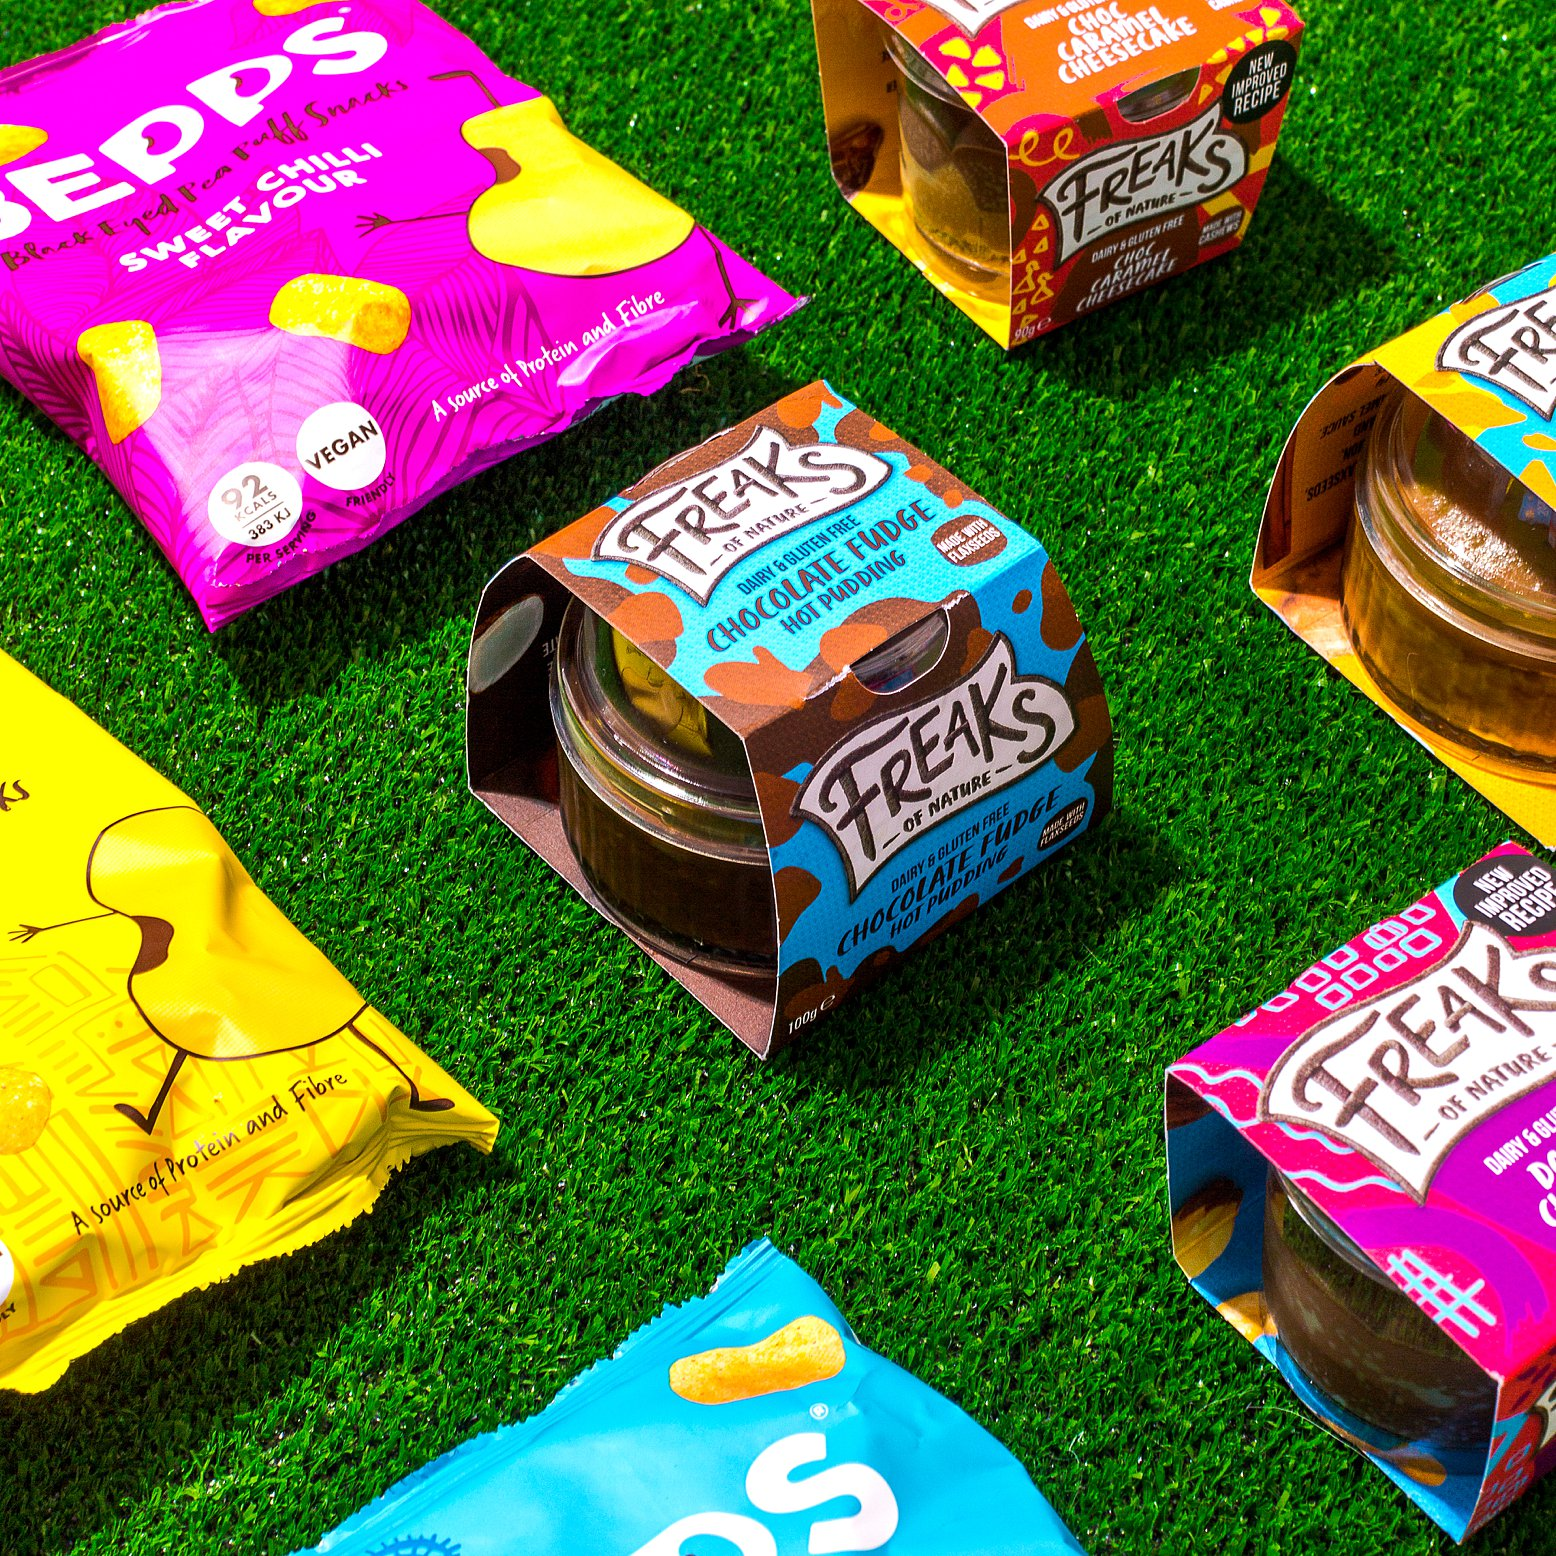 Product photography & content creation for Bepps Snacks. Product photography & styling by Marianne Taylor.